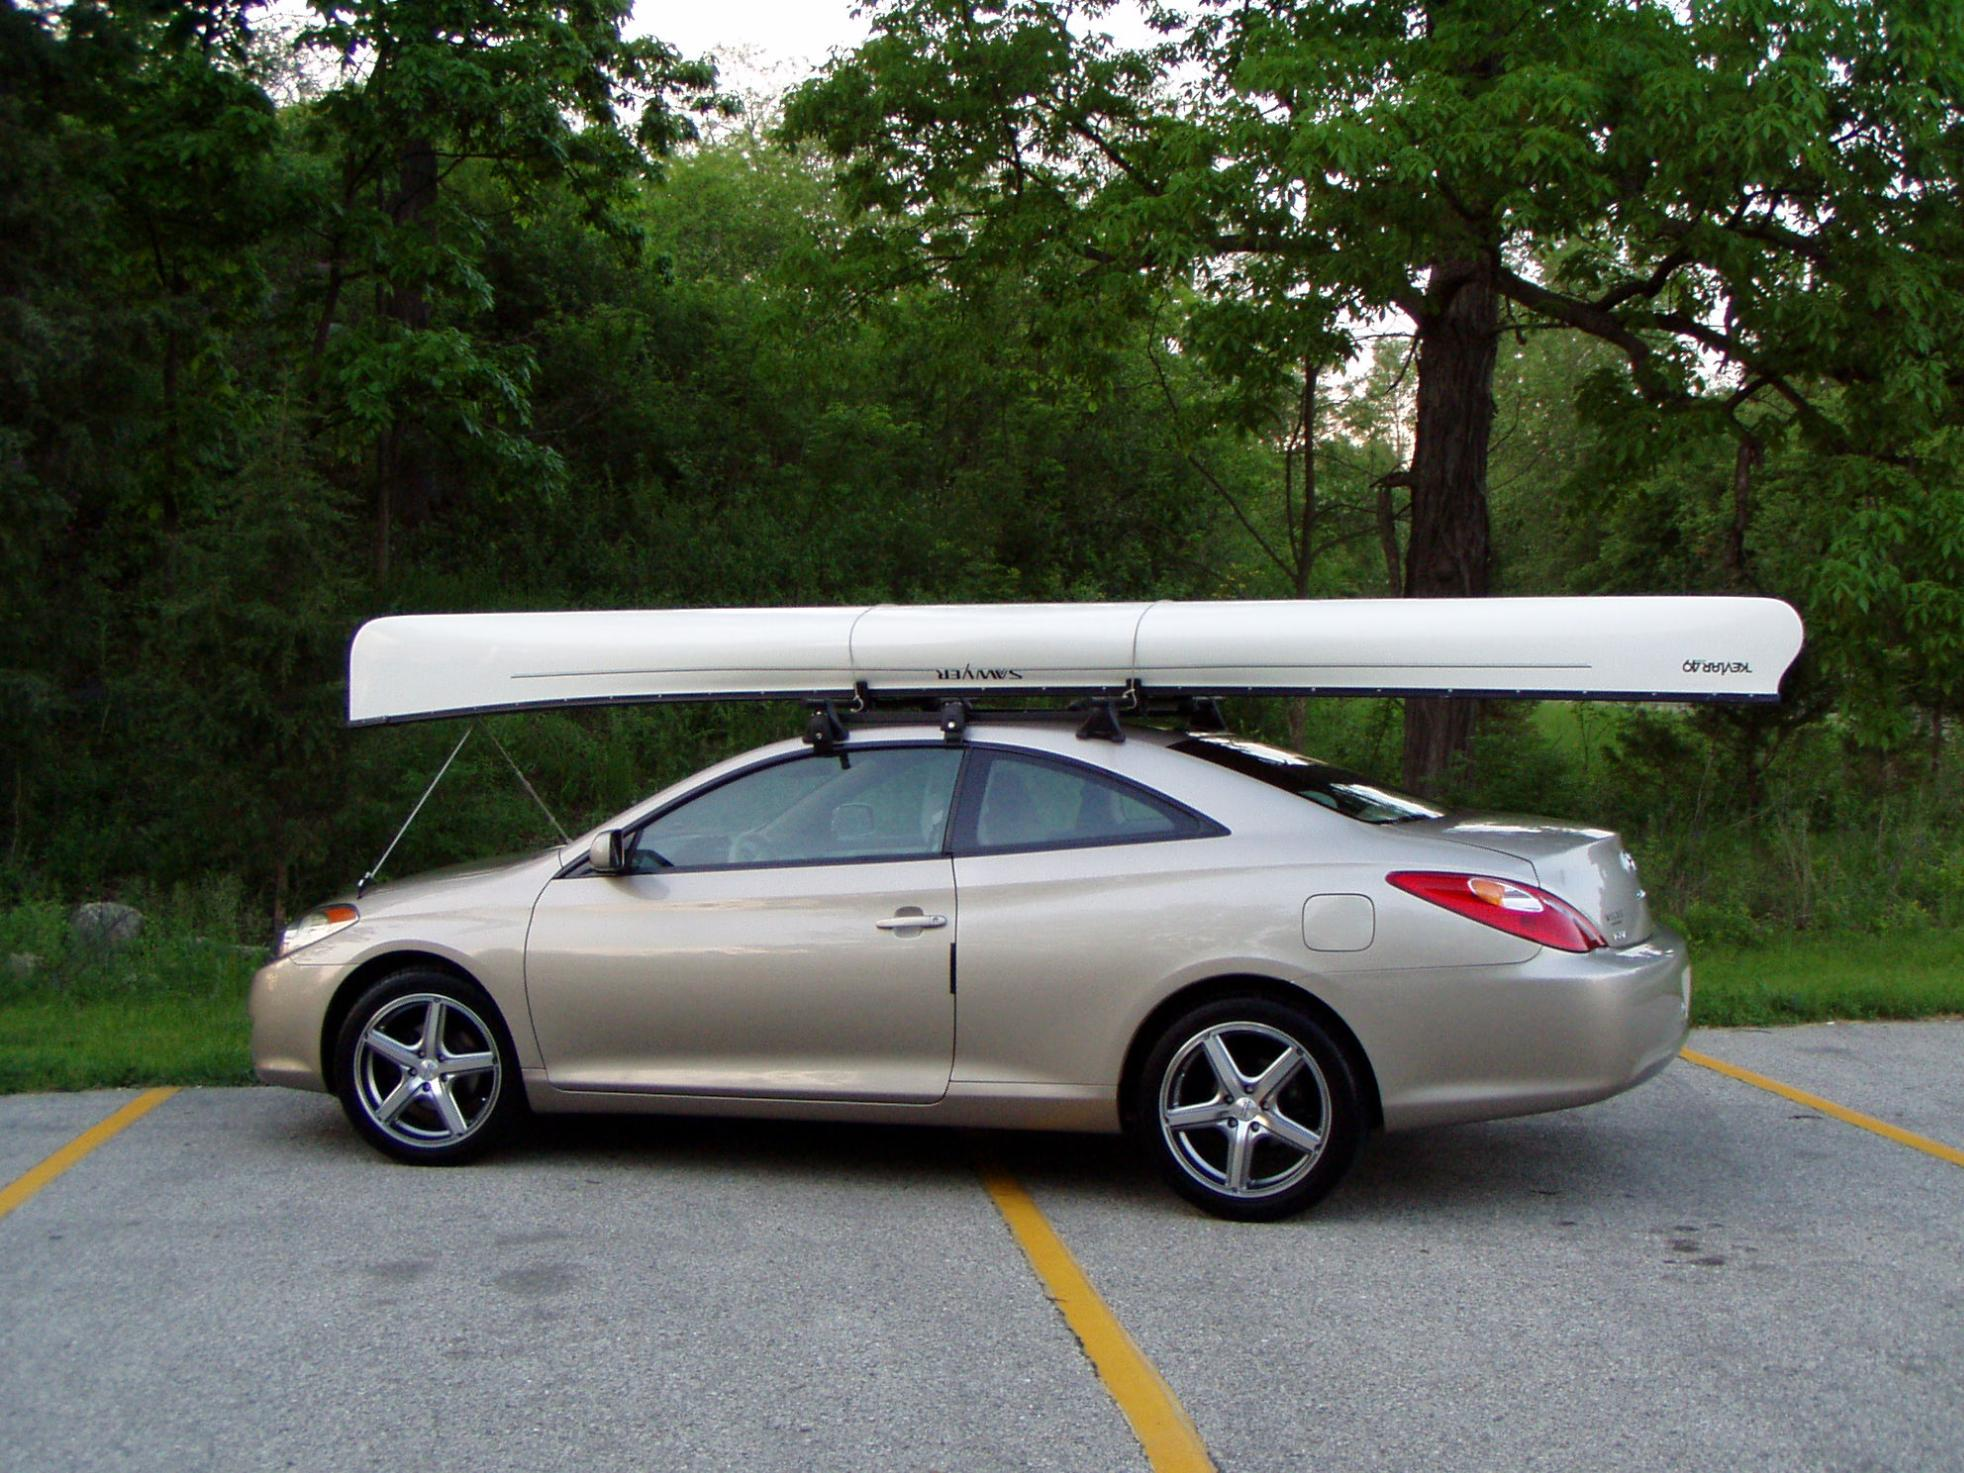 Toyota Camry Roof Rack For Sale